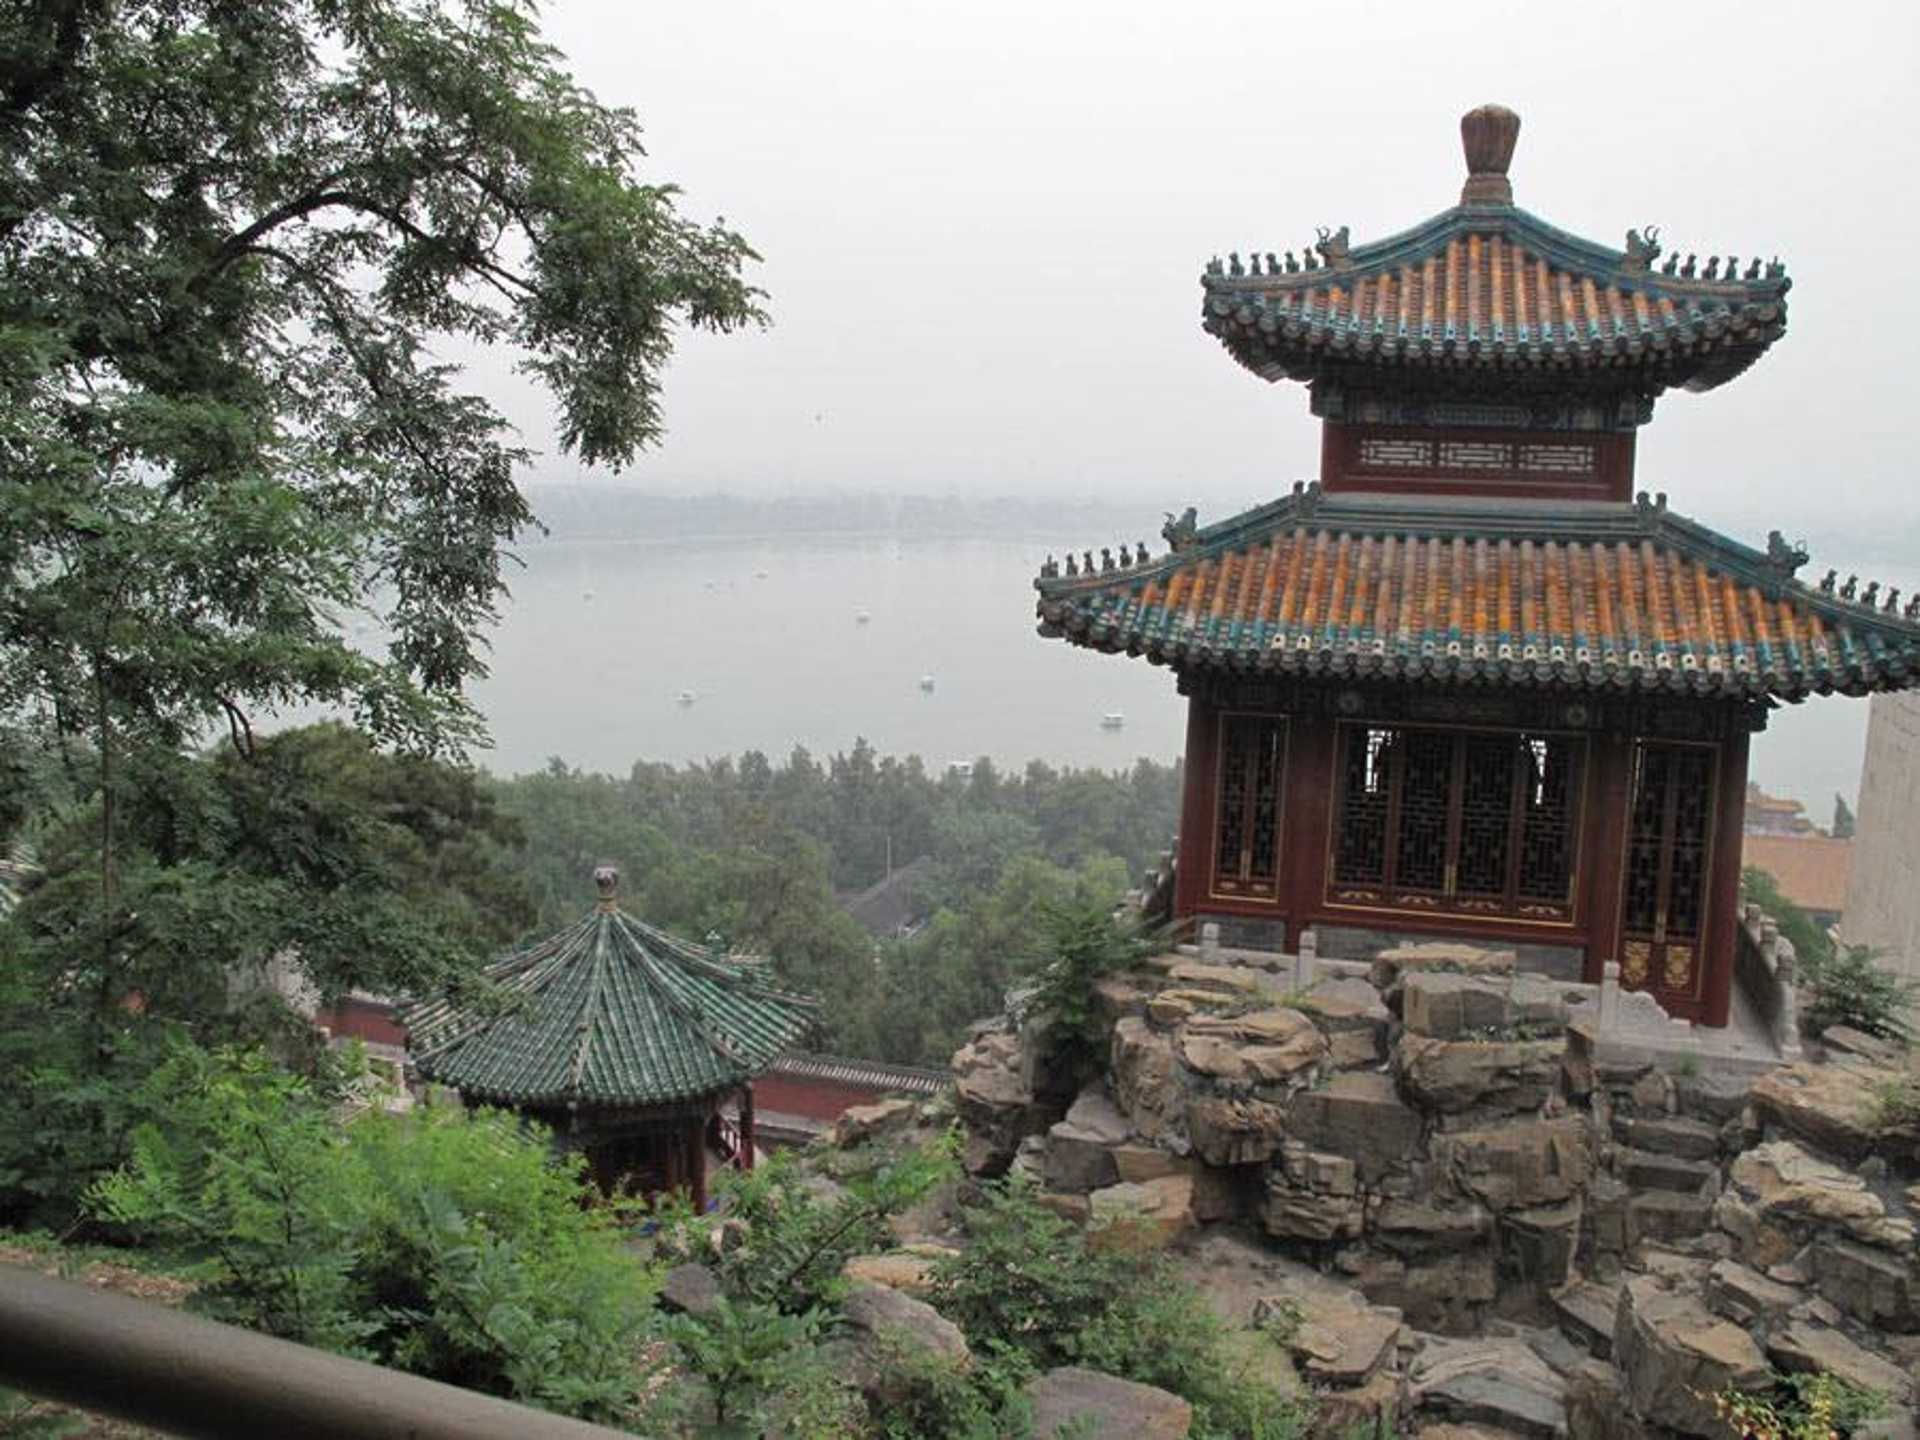 One of the structures in the Summer Palace overlooking the lake.